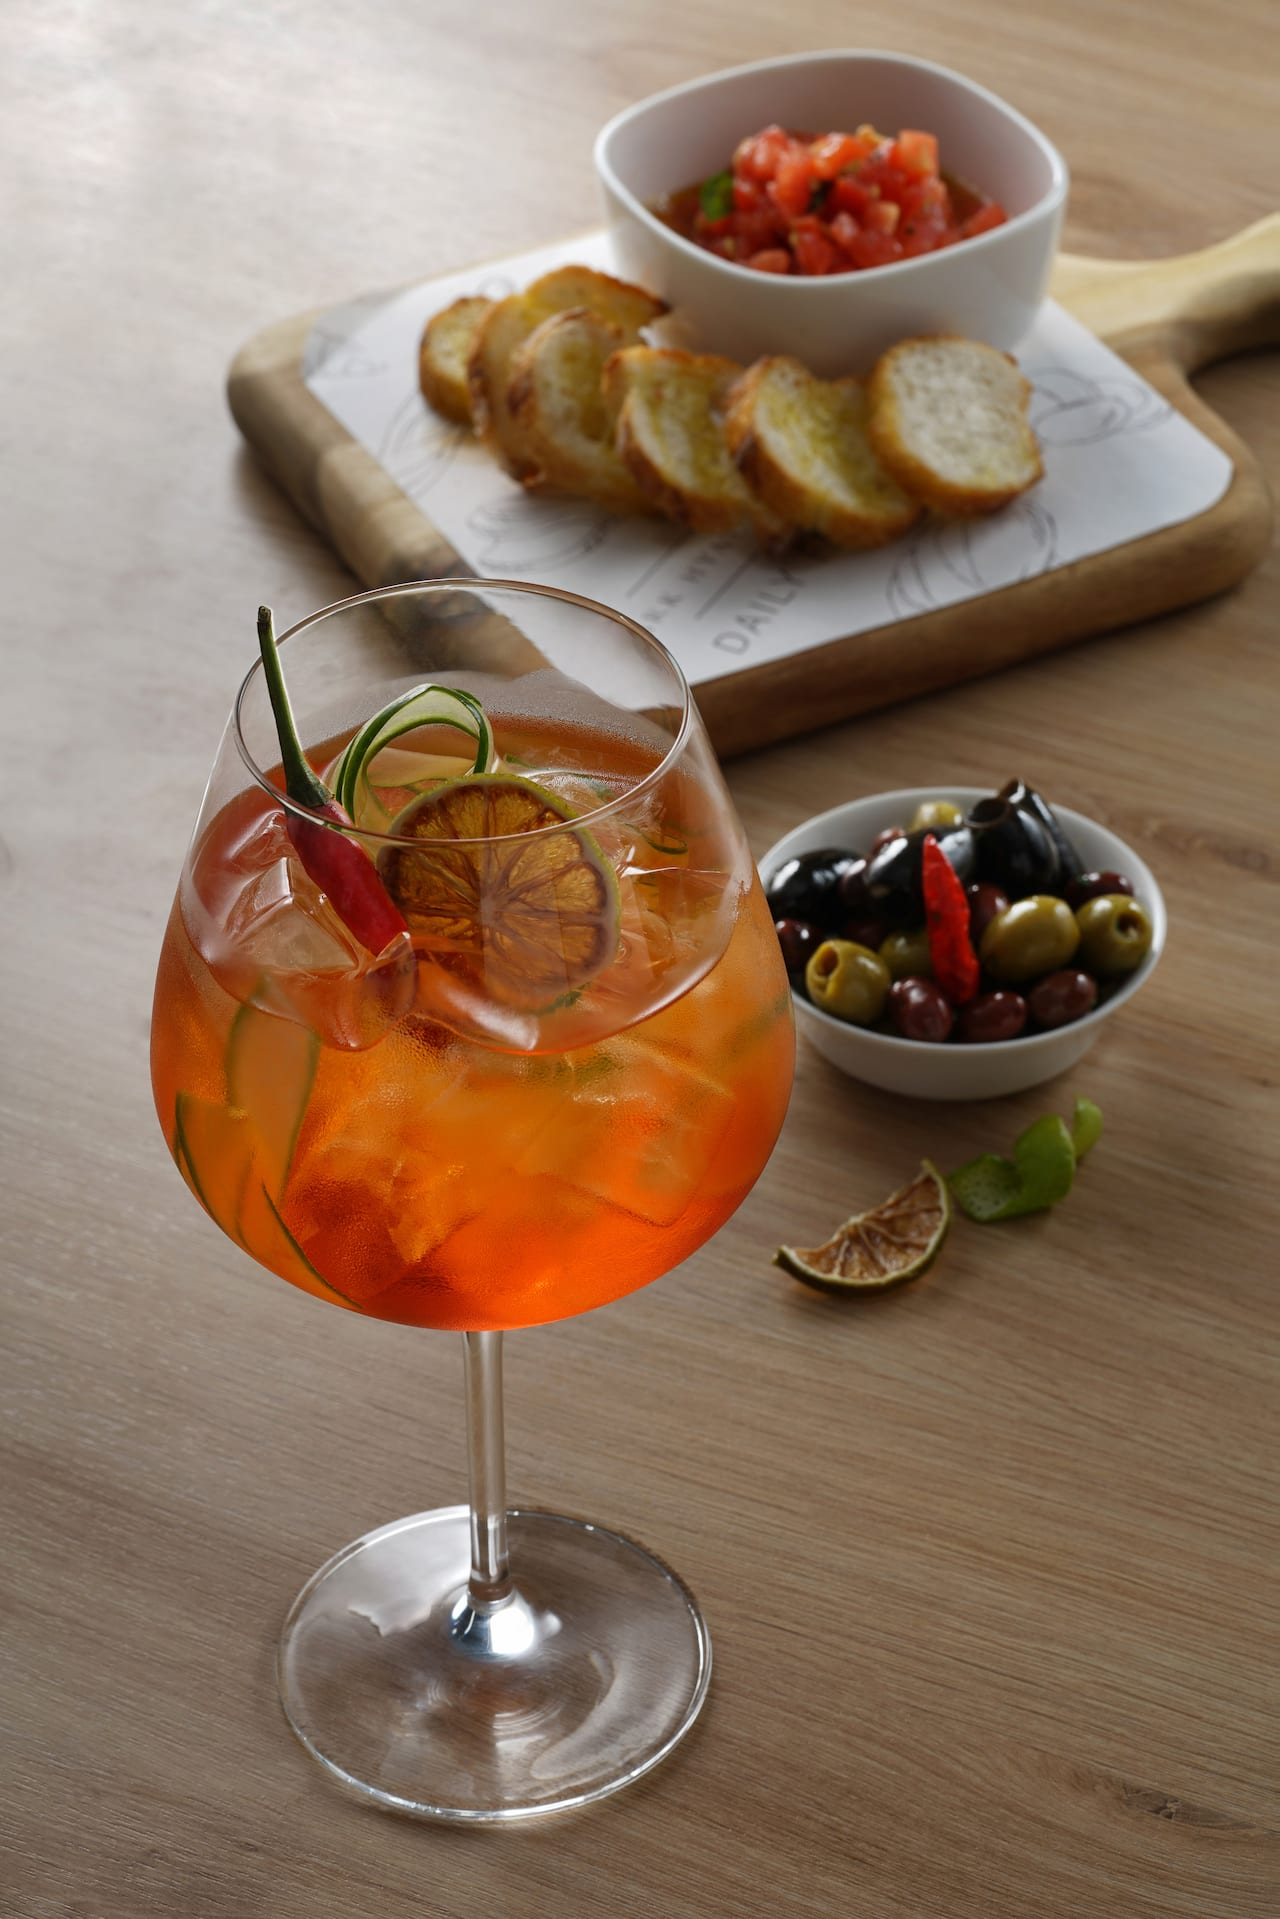 Park Hyatt Saigon Restaurant and Bar (Drink Menu-Spicy Spritz)